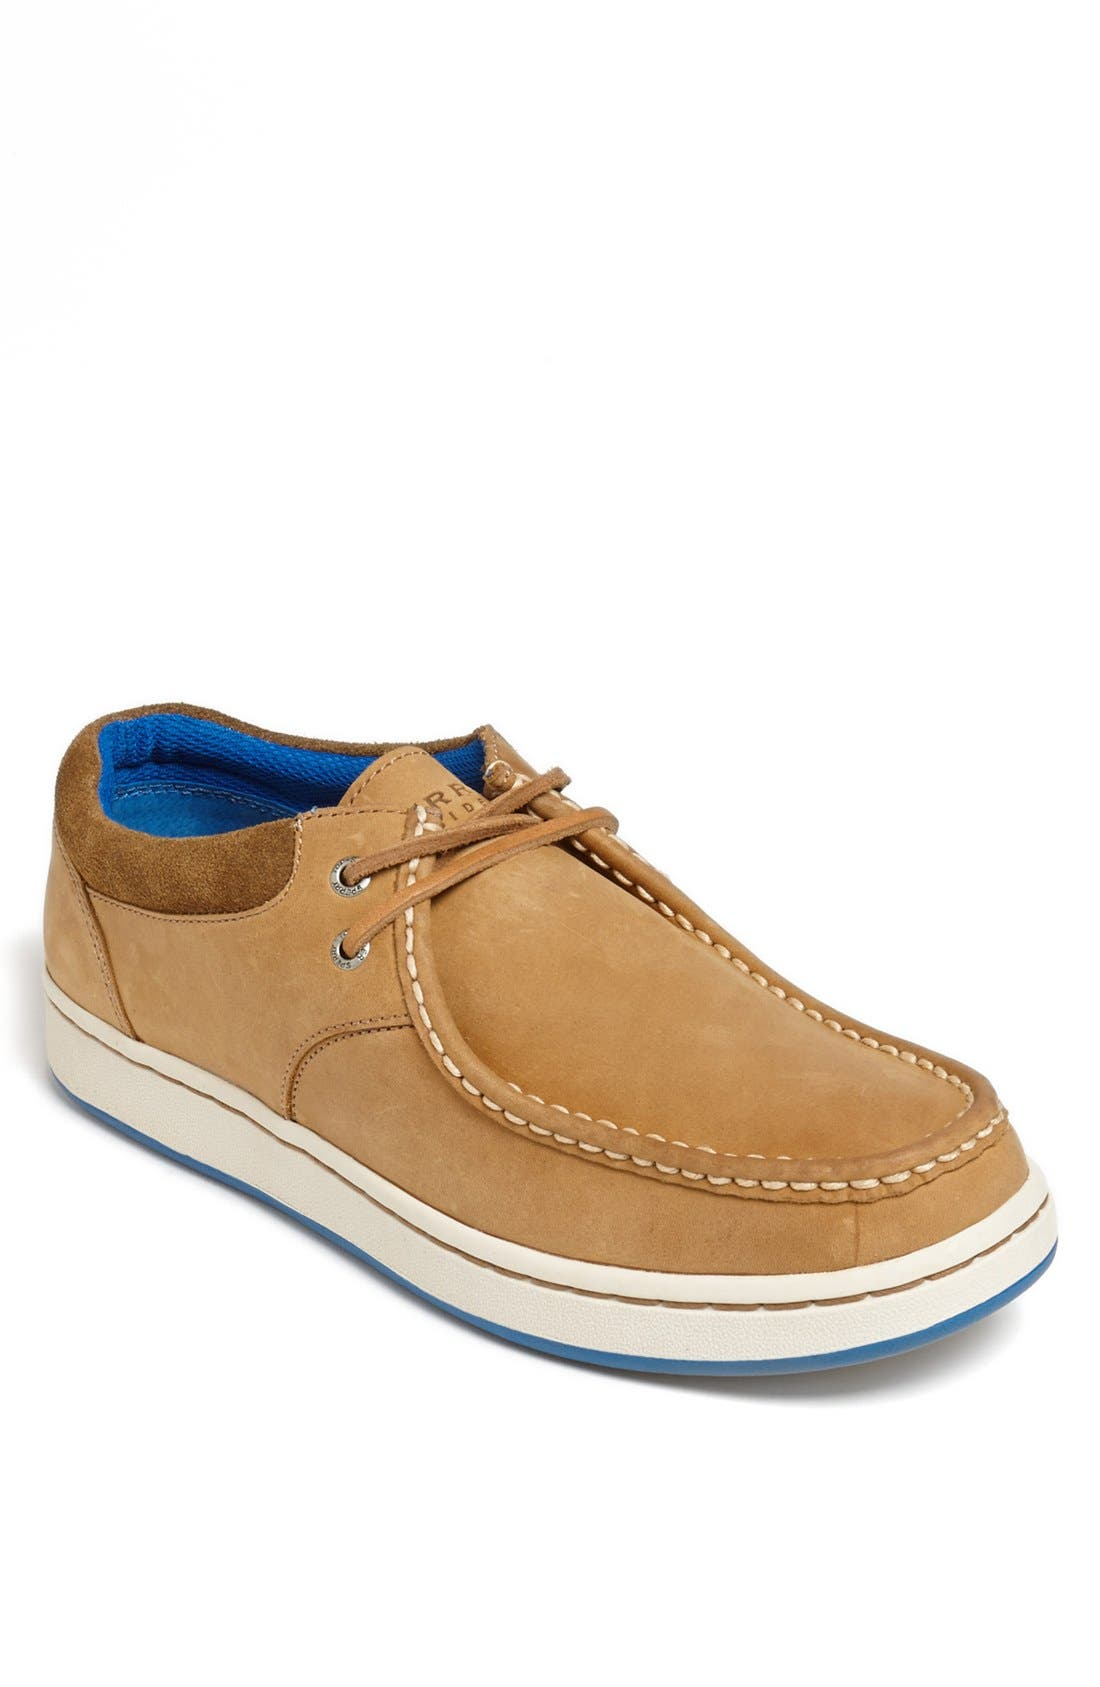 Alternate Image 1 Selected - Sperry Top-Sider® 'Sperry Cup' Chukka Boot